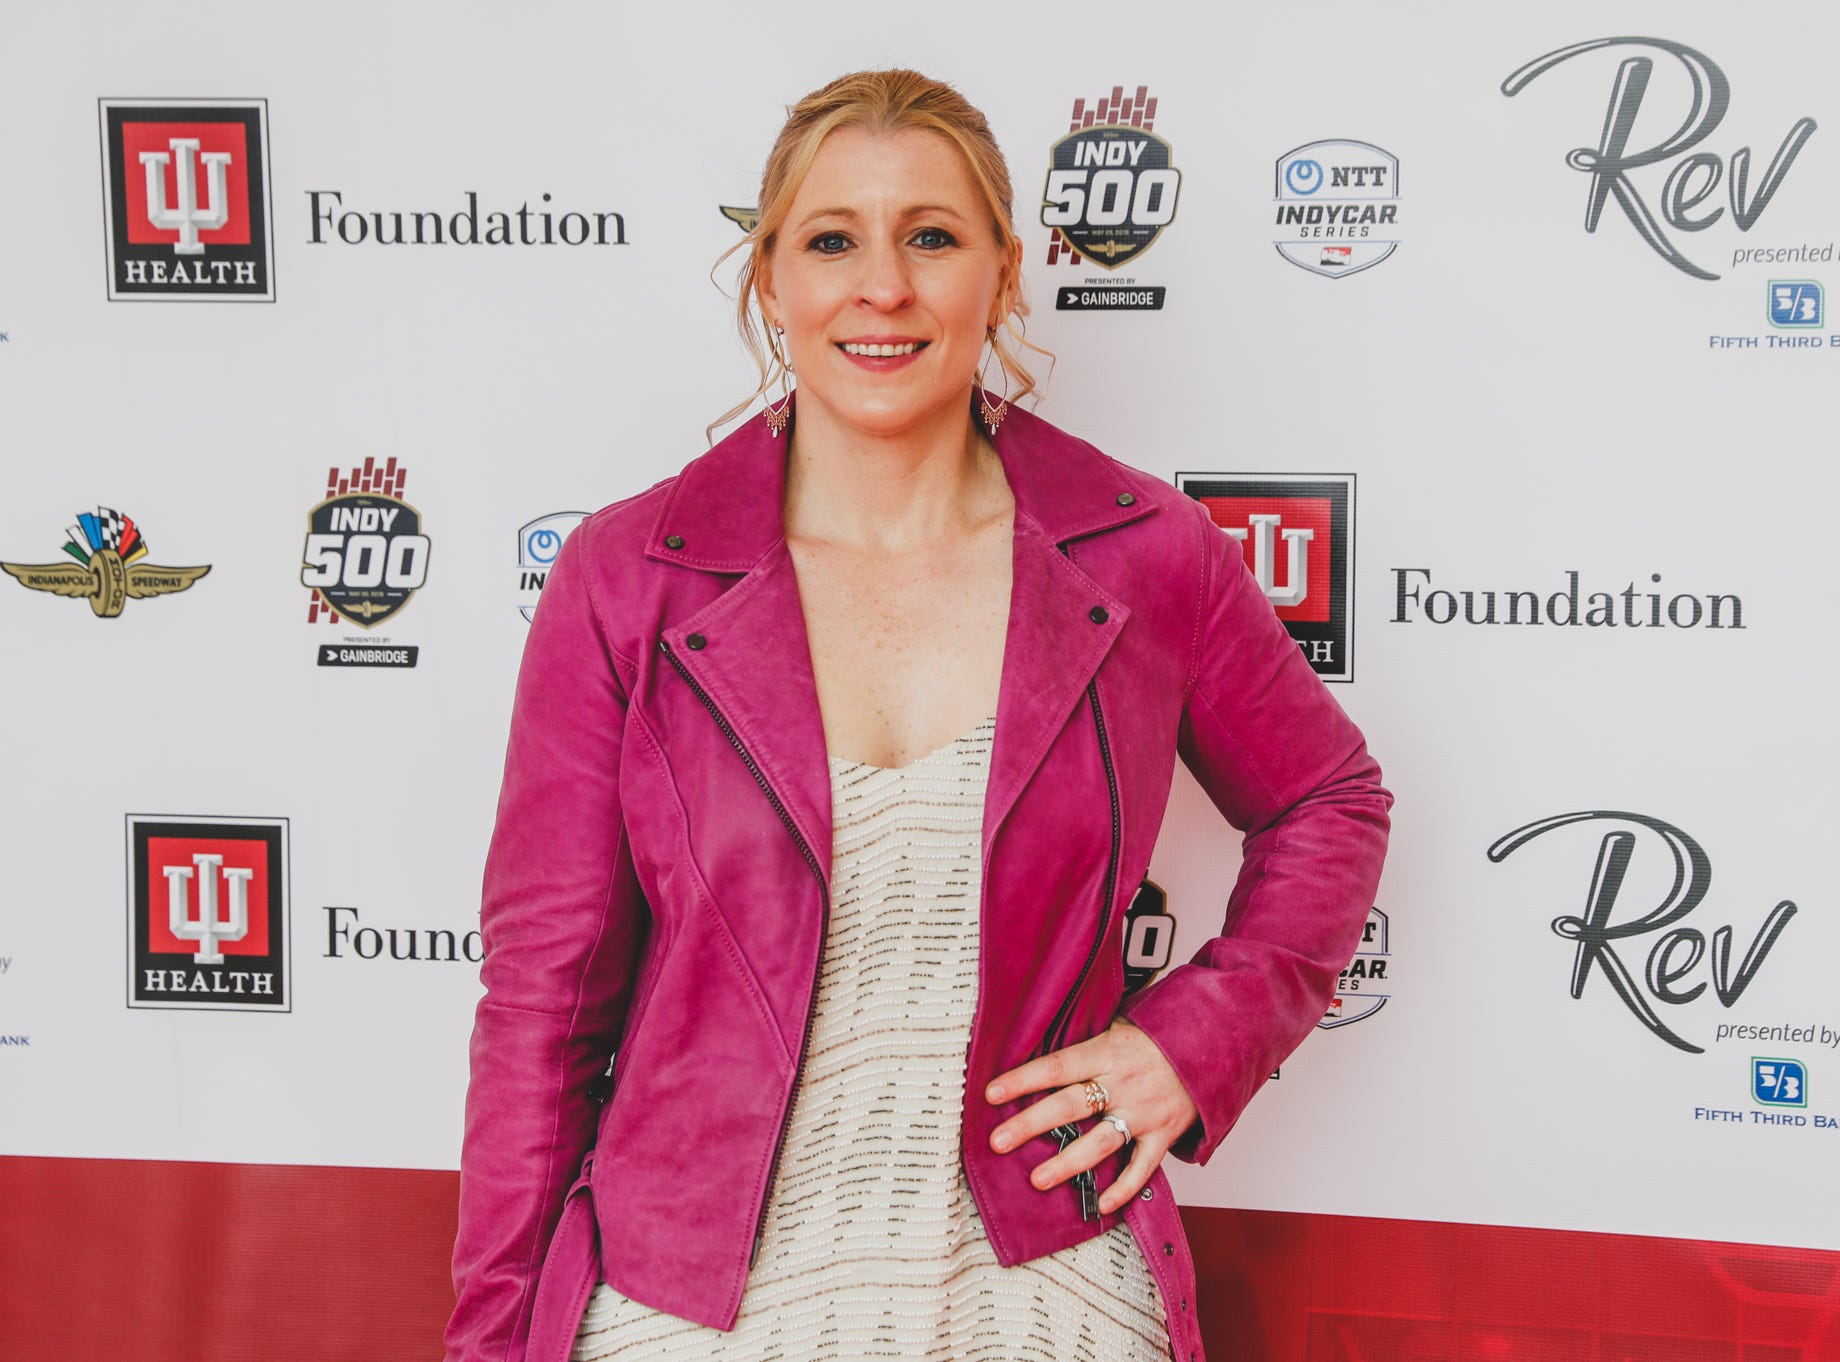 IndyCar driver Pippa Mann walks the red carpet at the Rev Indy fundraiser, held at the Indianapolis Motor Speedway on Saturday, May 4, 2019. Funds raised support the IU Health Foundation statewide and the IU Health Emergency Medical Center at IMS.